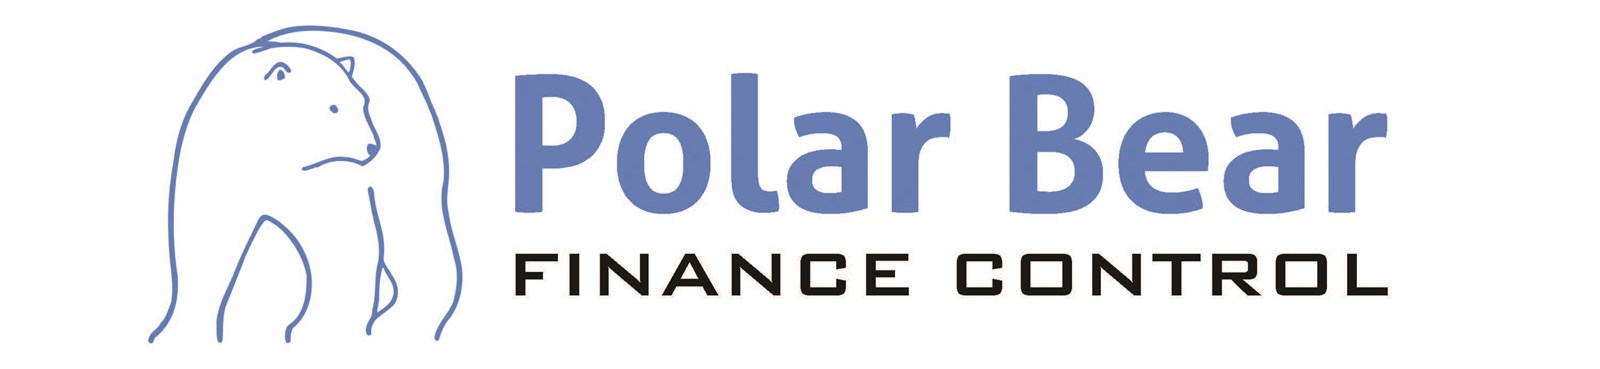 Logo van Polar Bear Finance Control